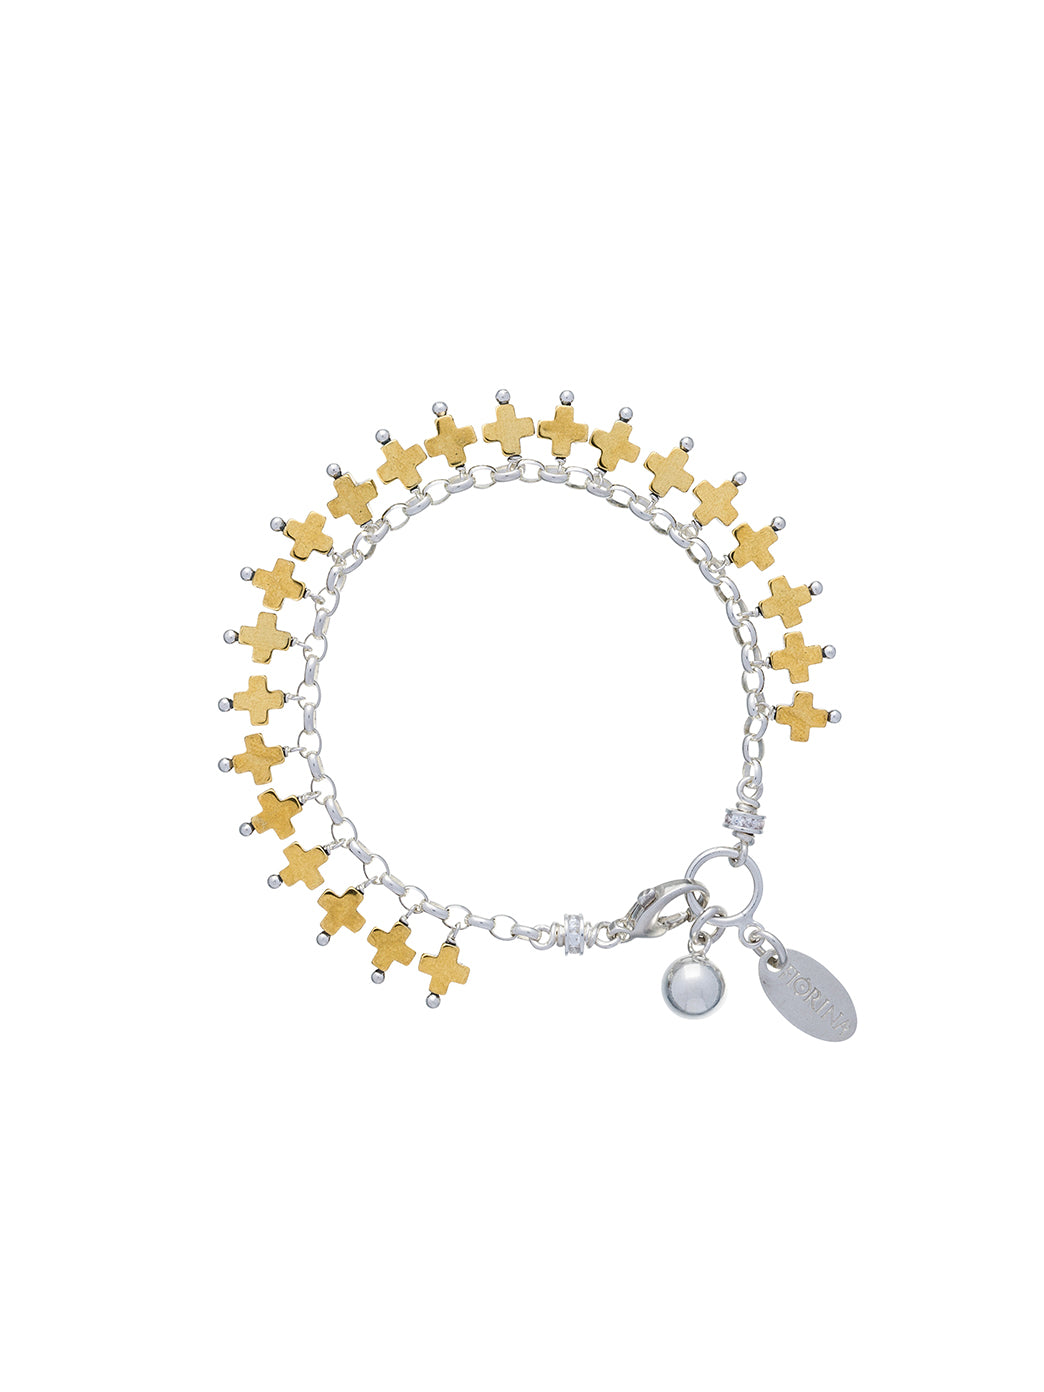 Fiorina Jewellery Raindrop Bracelet Gold Cross